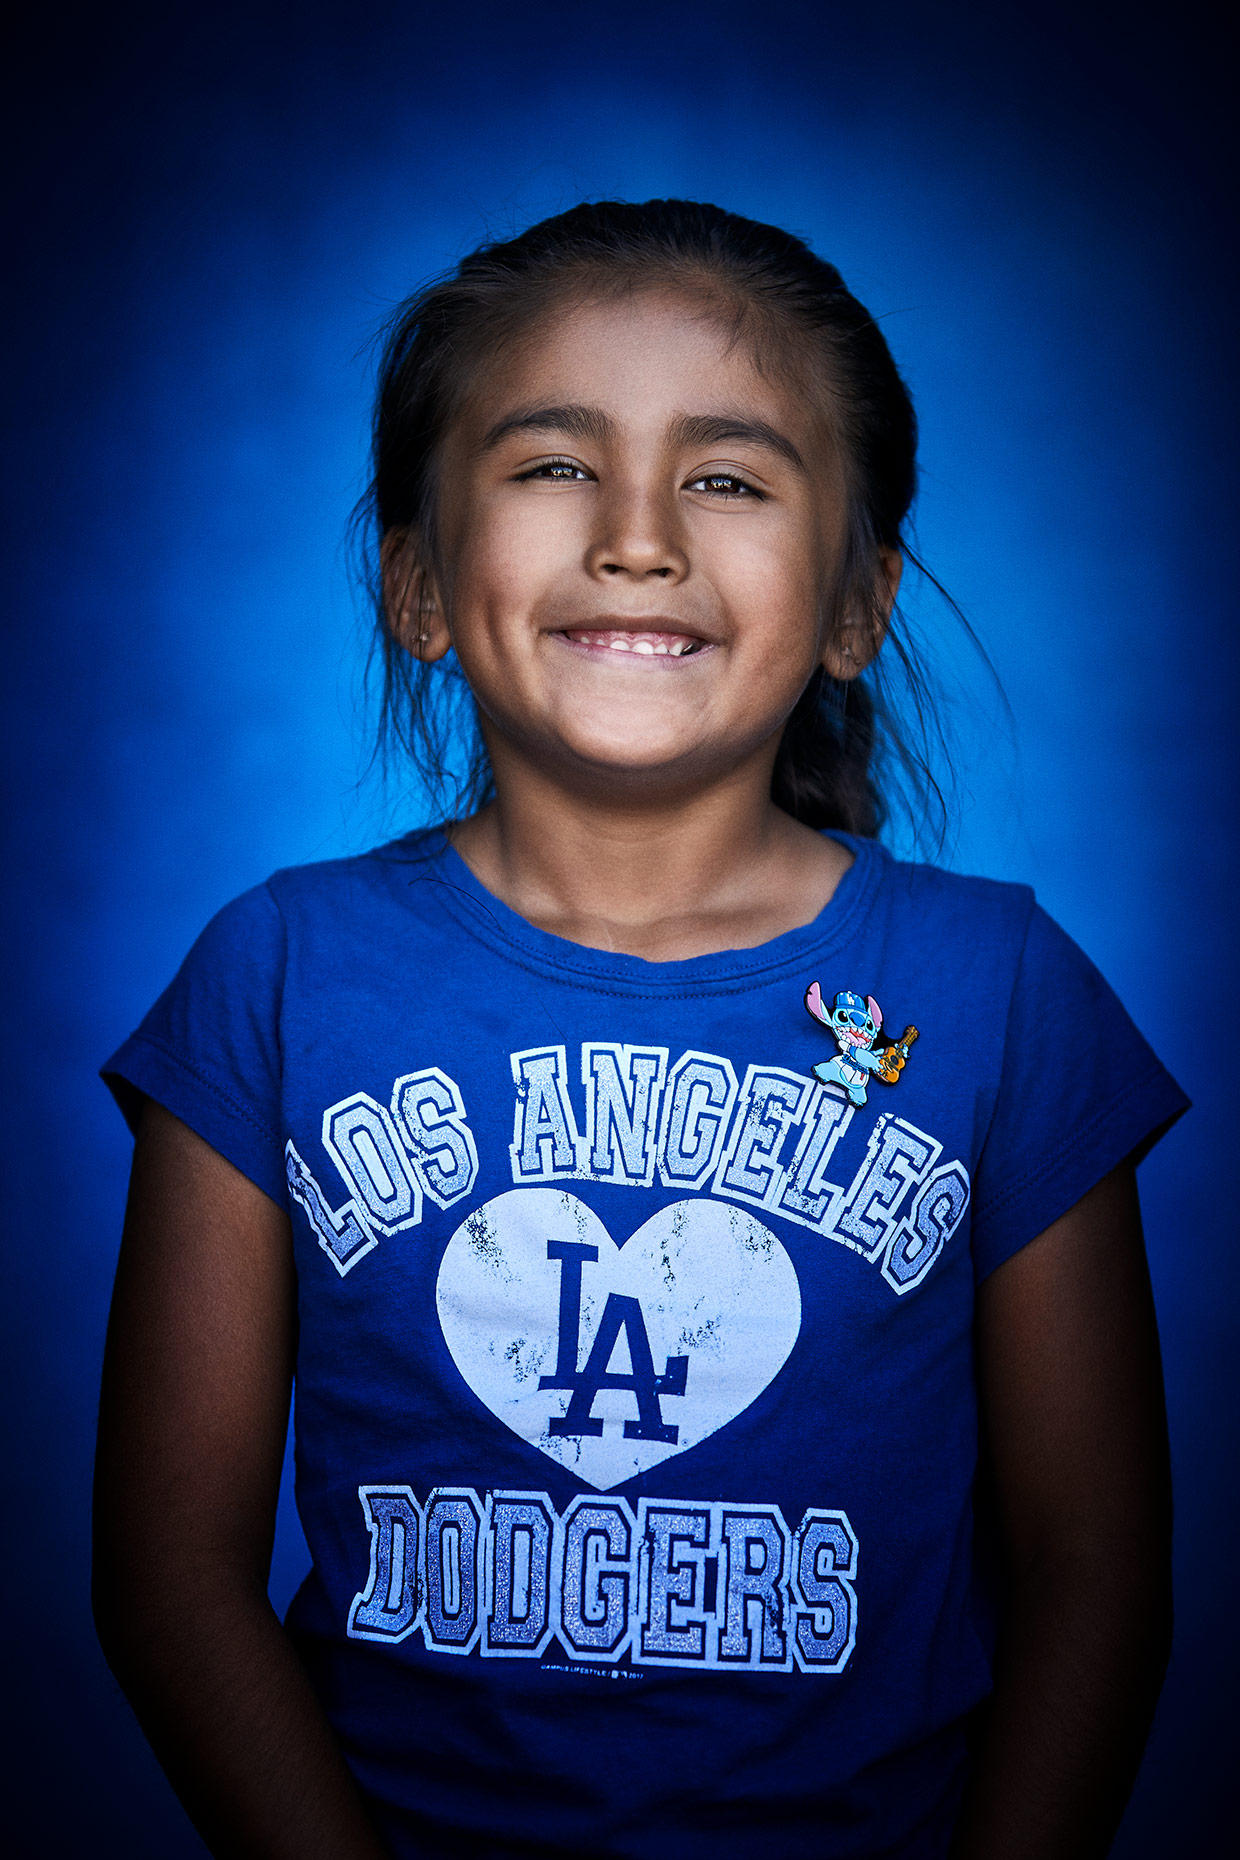 04_0727-DodgerFans_2461-Lily